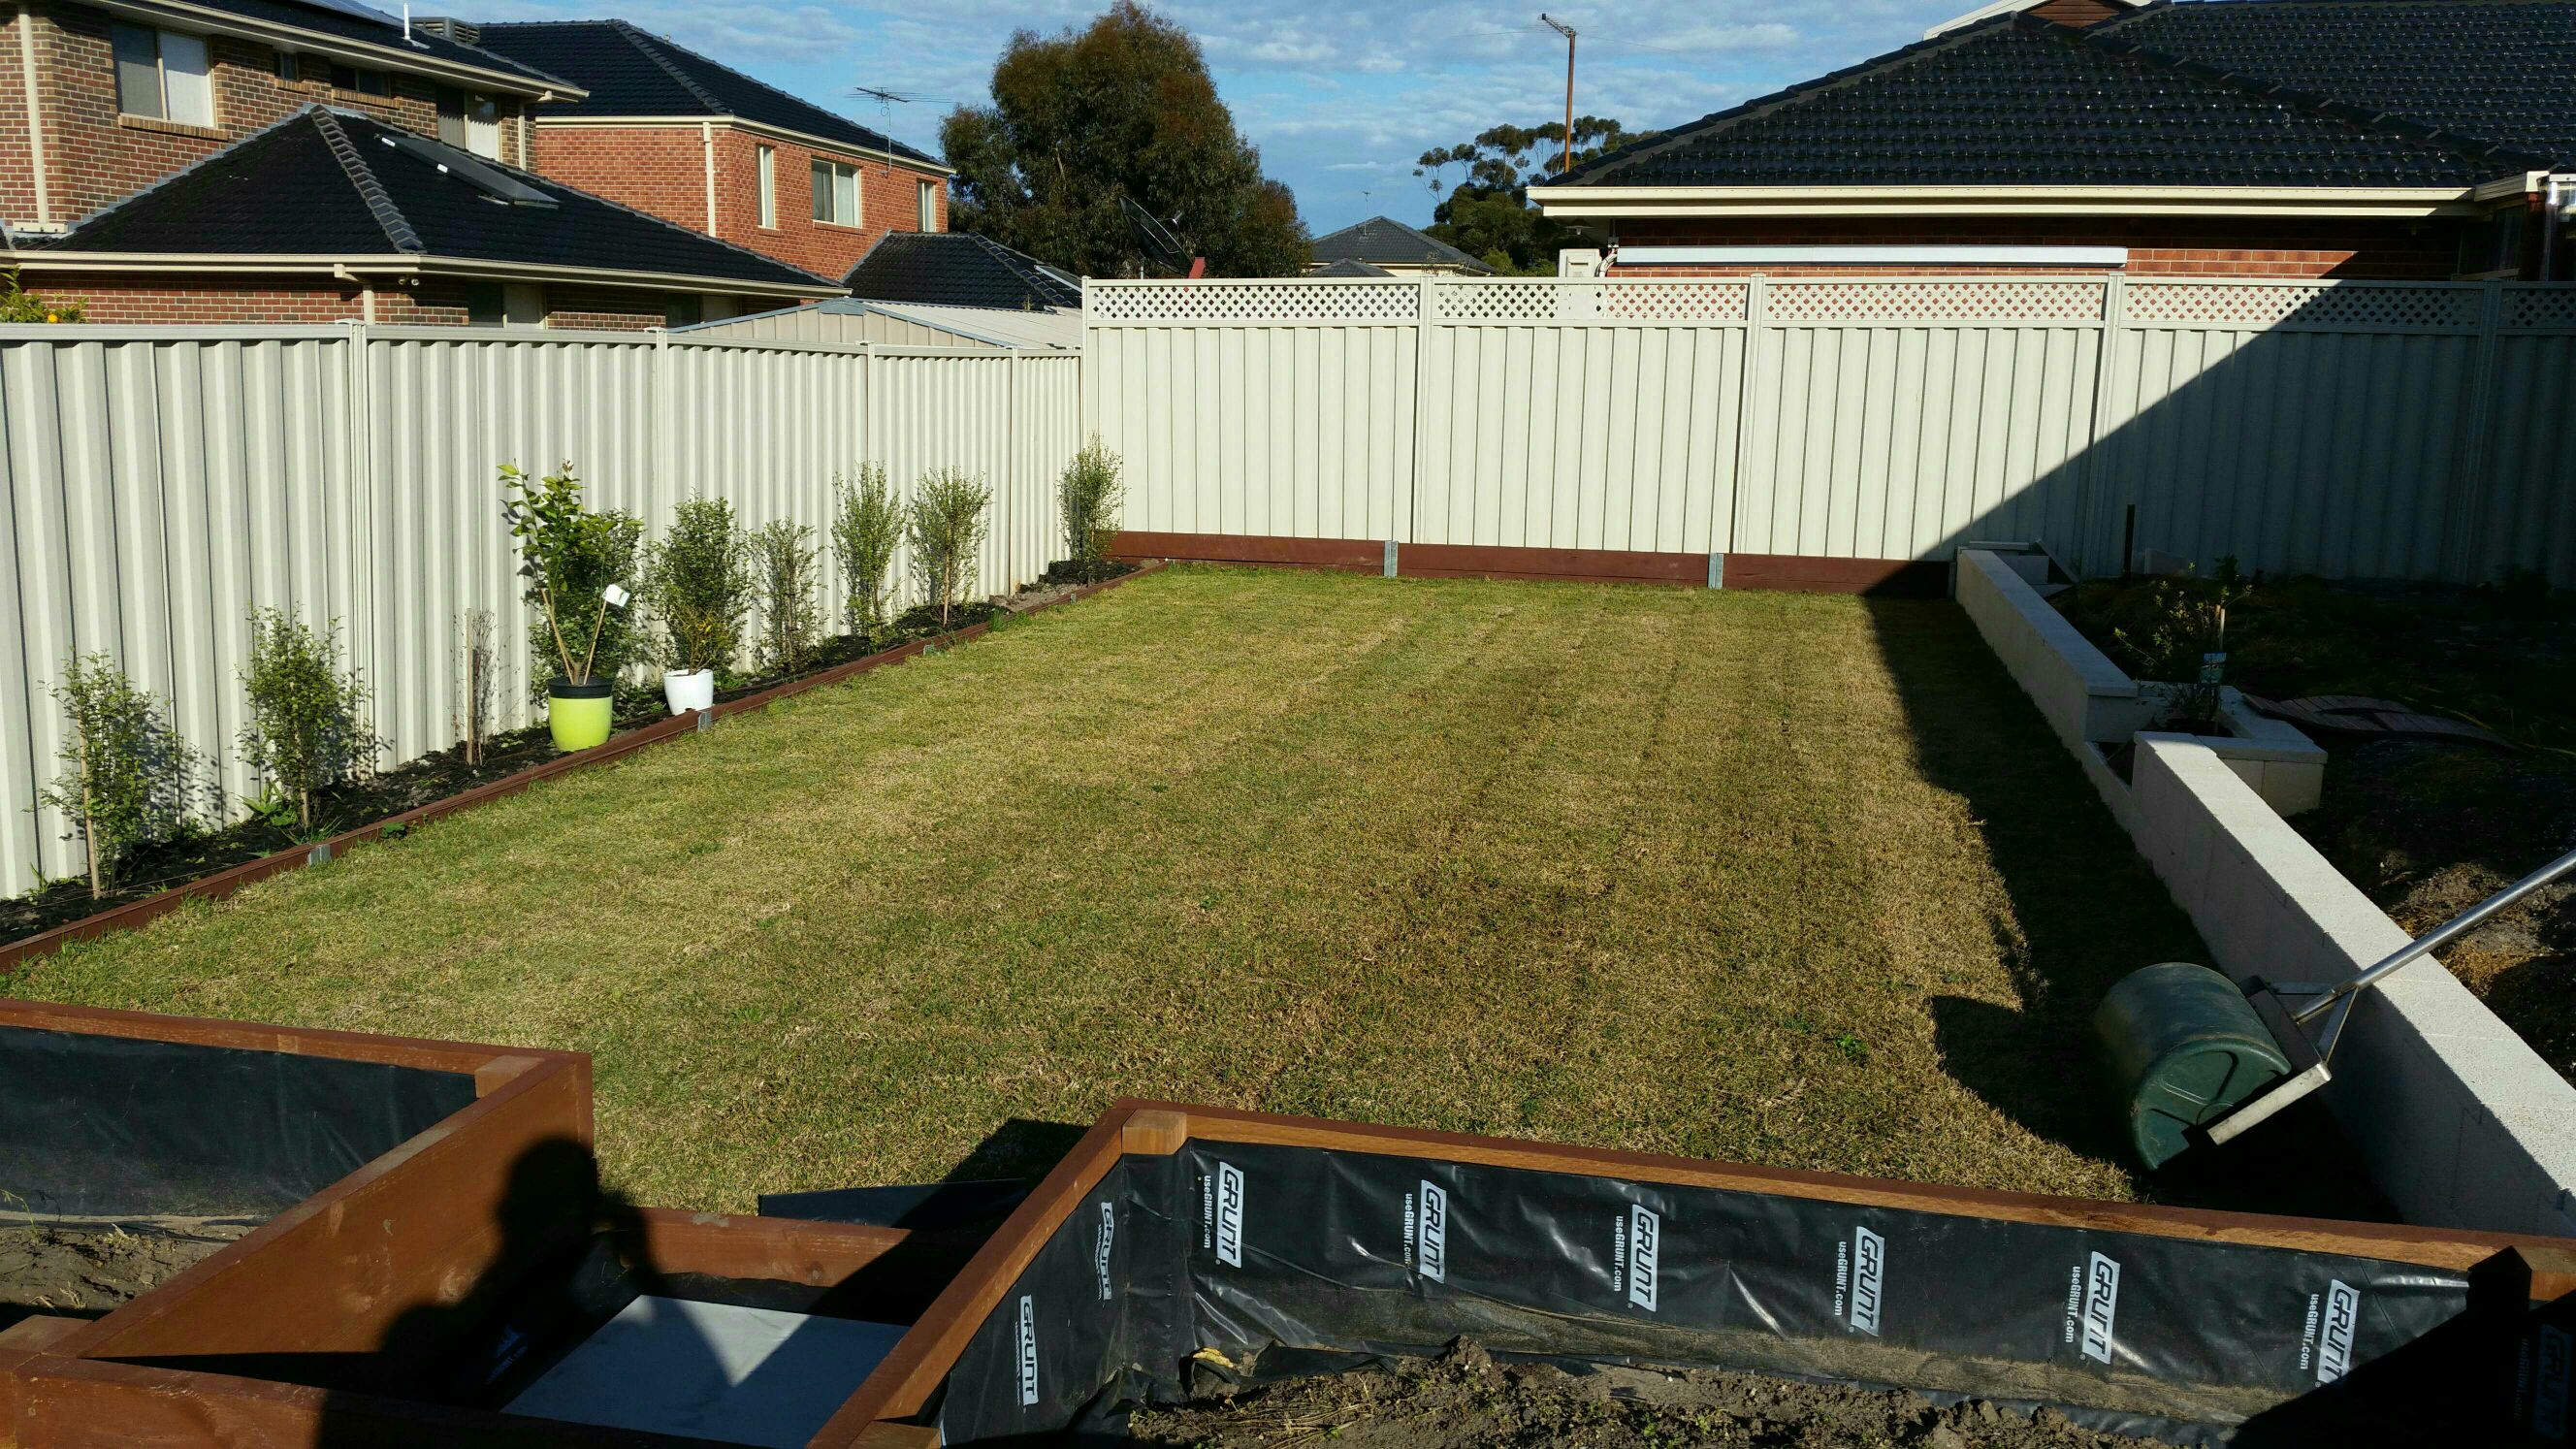 View topic - New Sapphire Buffalo lawn. • Home Renovation & Building ...